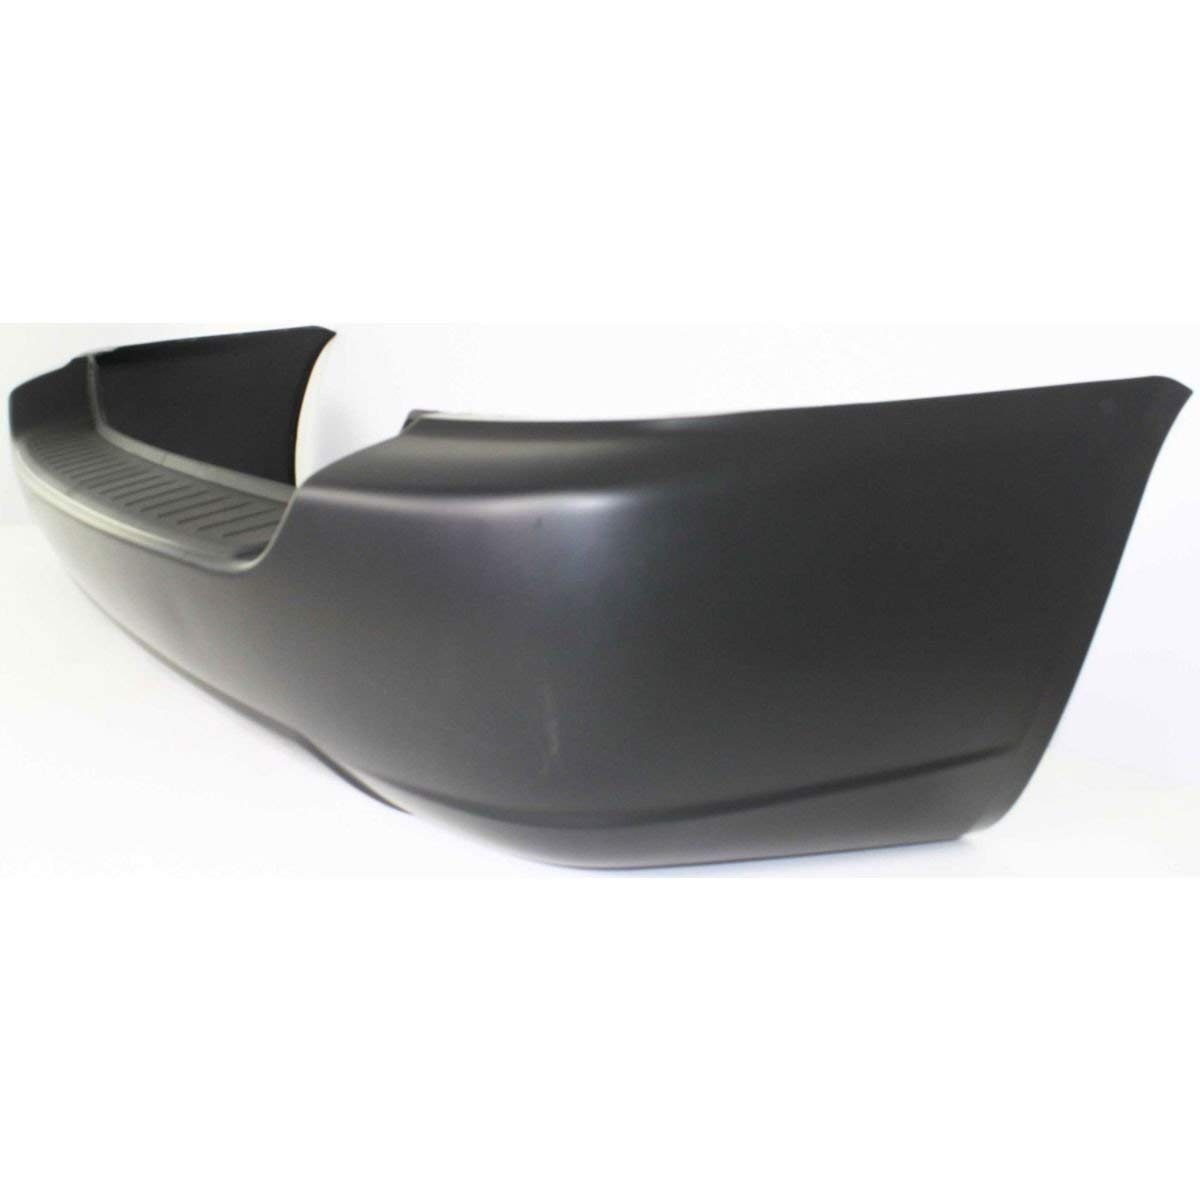 Painted to Match Rear Bumper Cover for 2004 2005 2006 2007 Toyota Highlander 04-07 TO1100231 MBI AUTO